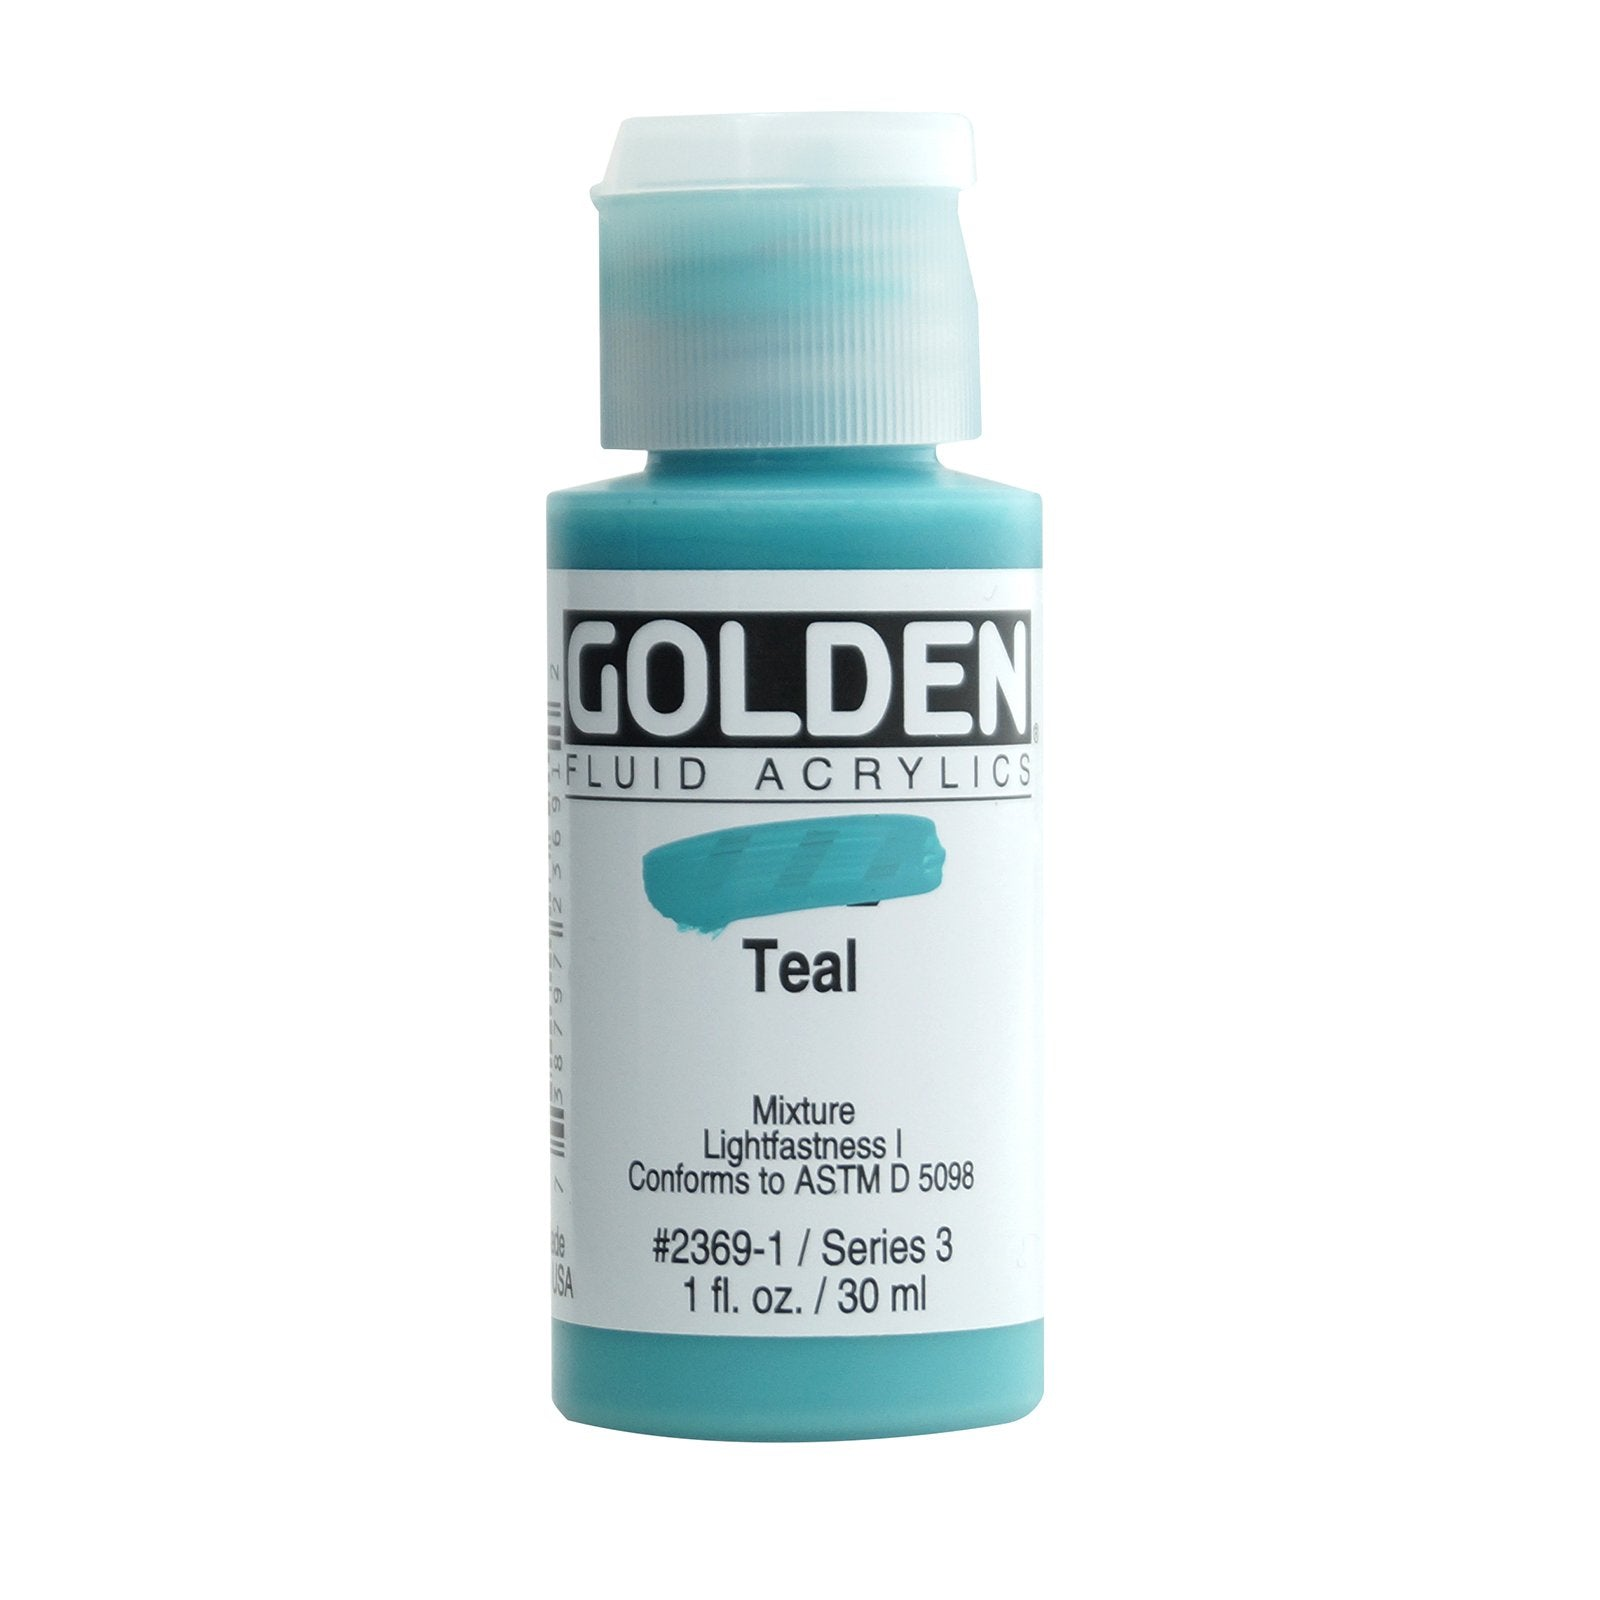 Golden® Fluid Acrylic, 1 oz., Teal